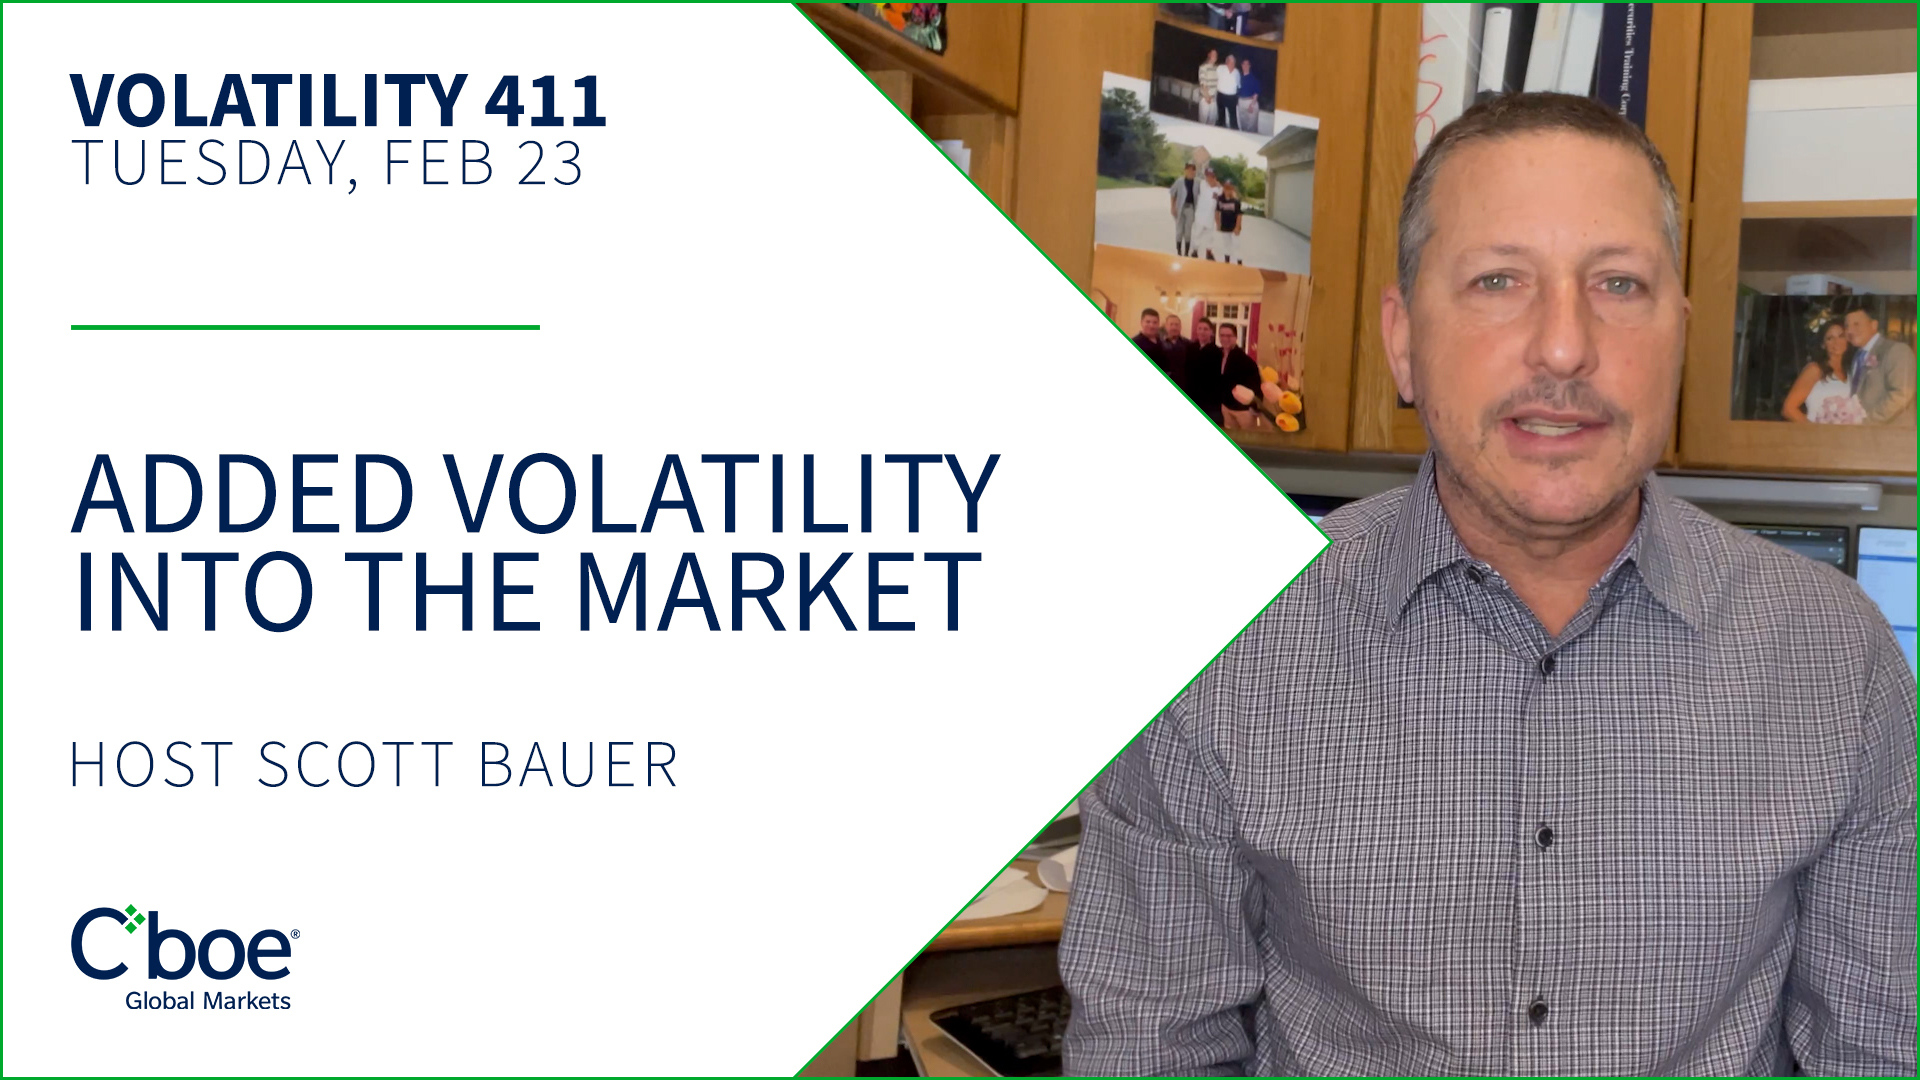 Volatility Added Into Market Thumbnail